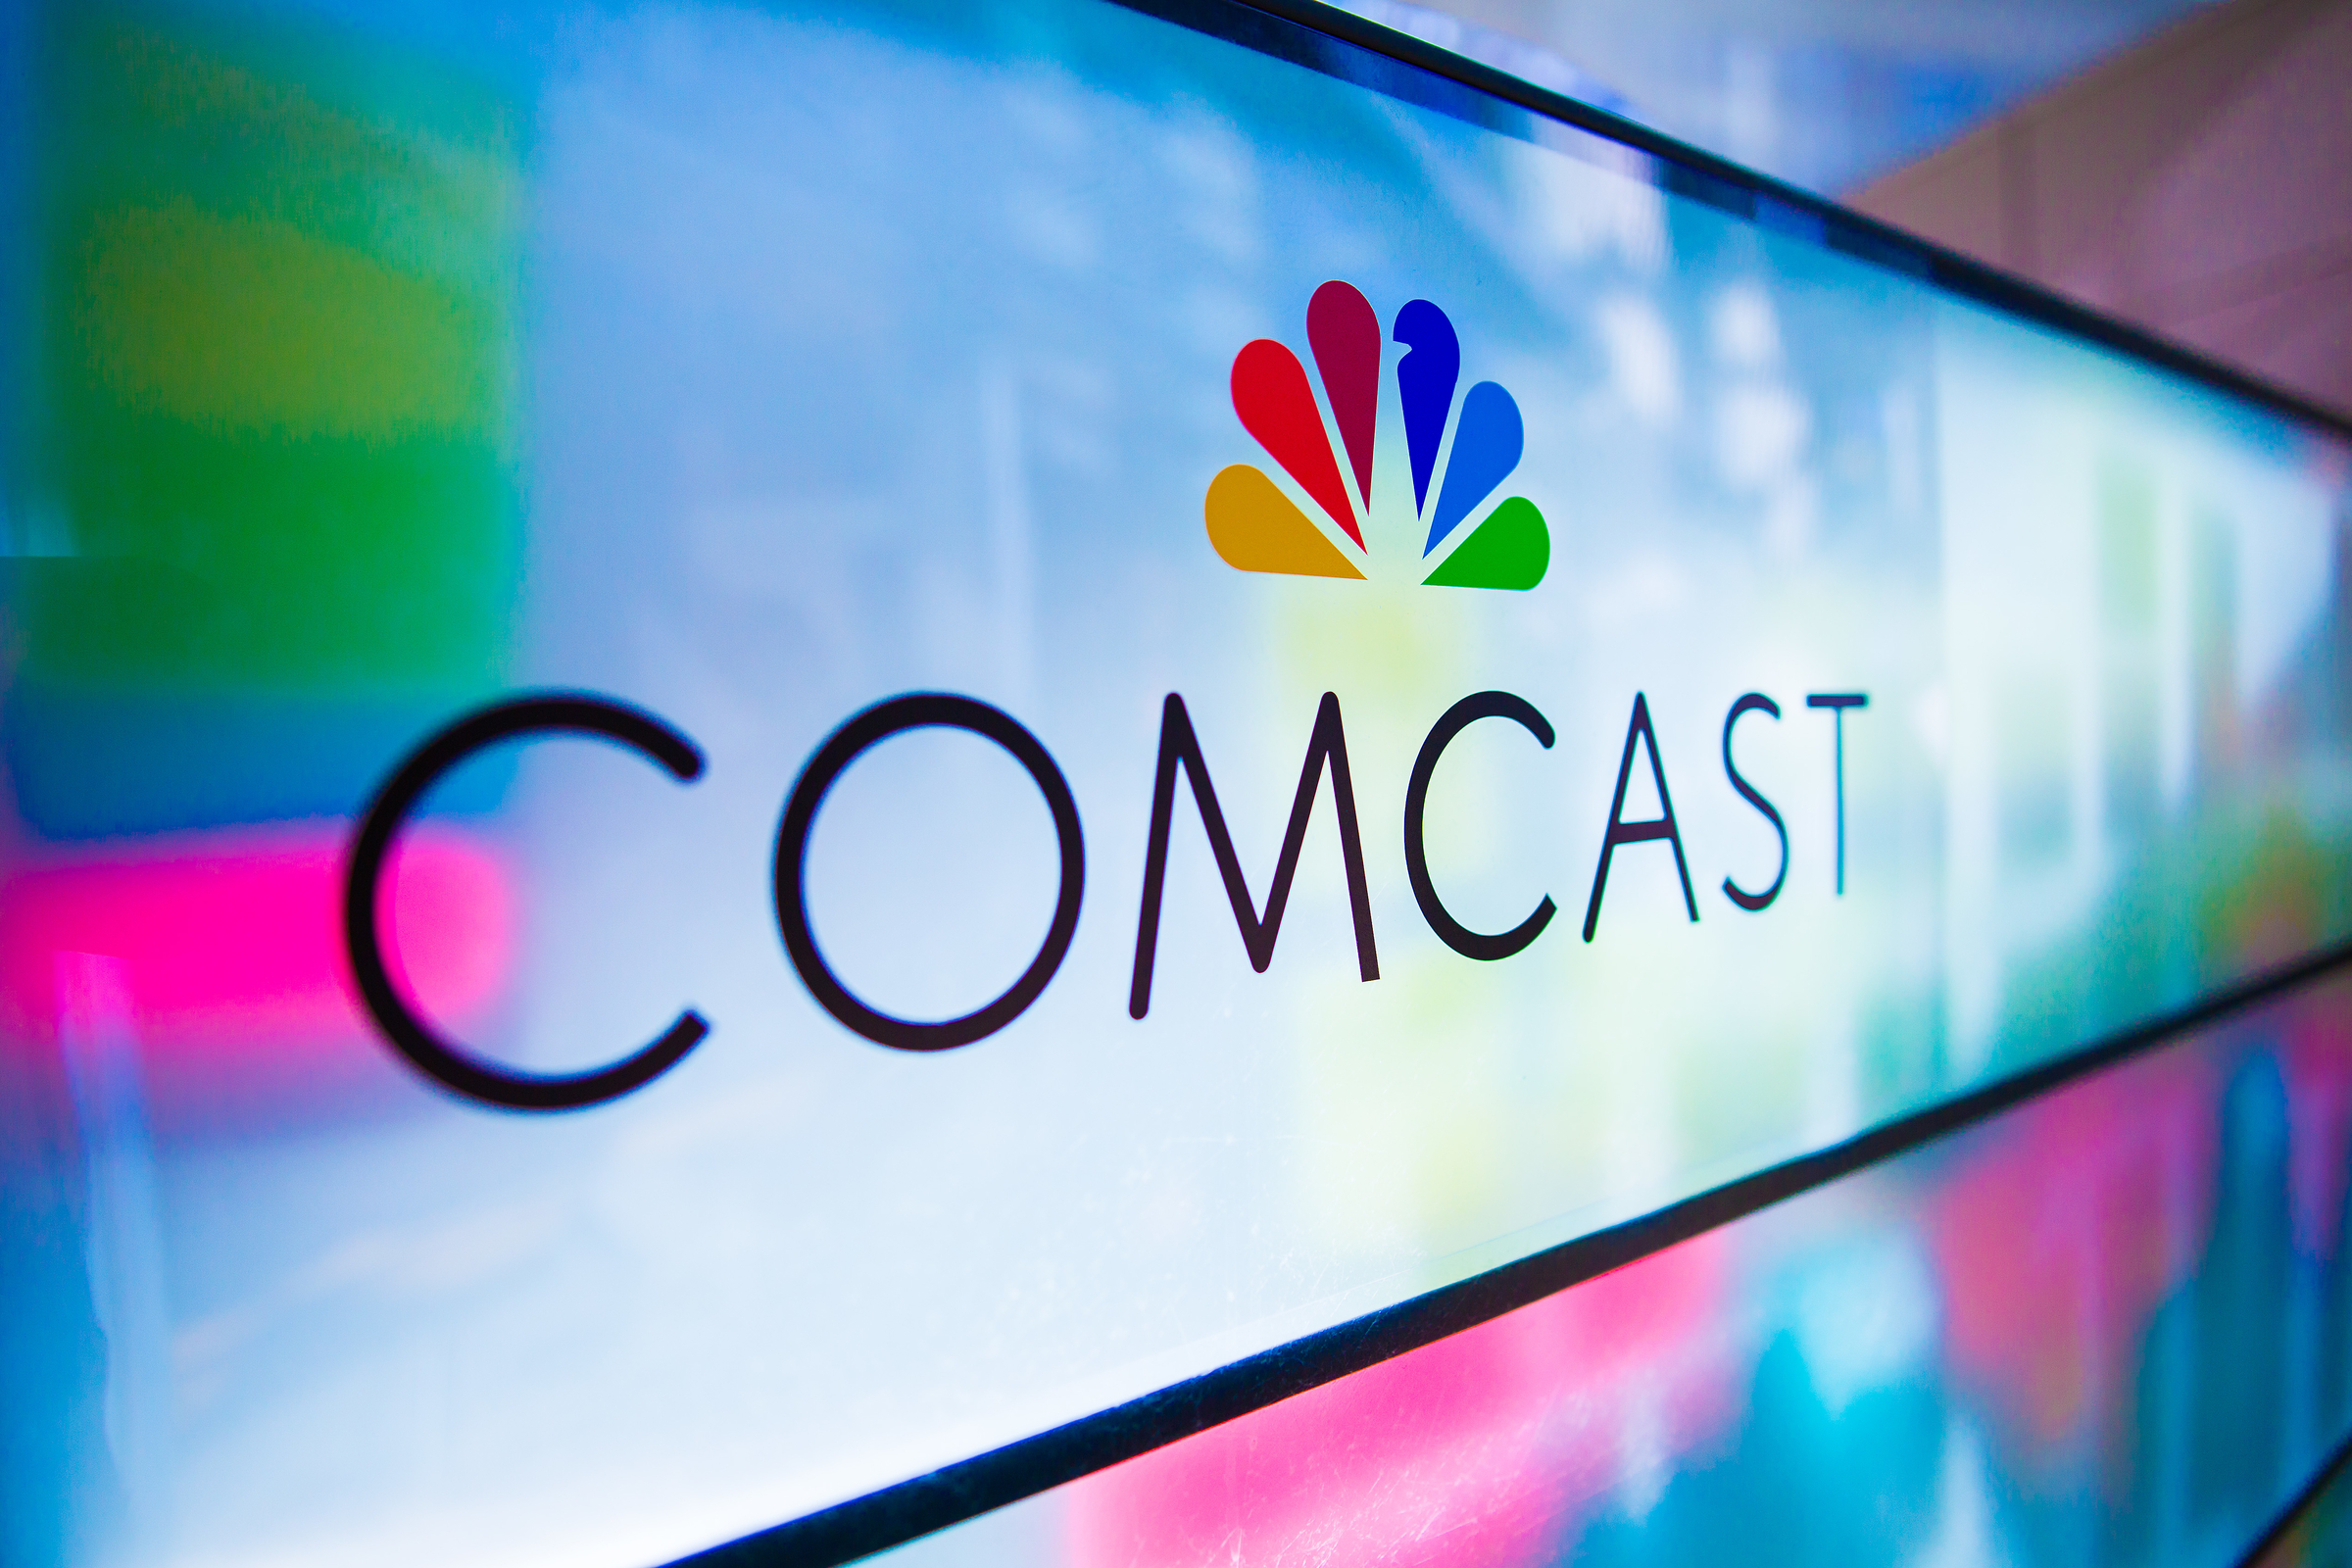 Comcast set to offer fast speeds in upcoming gigabit service